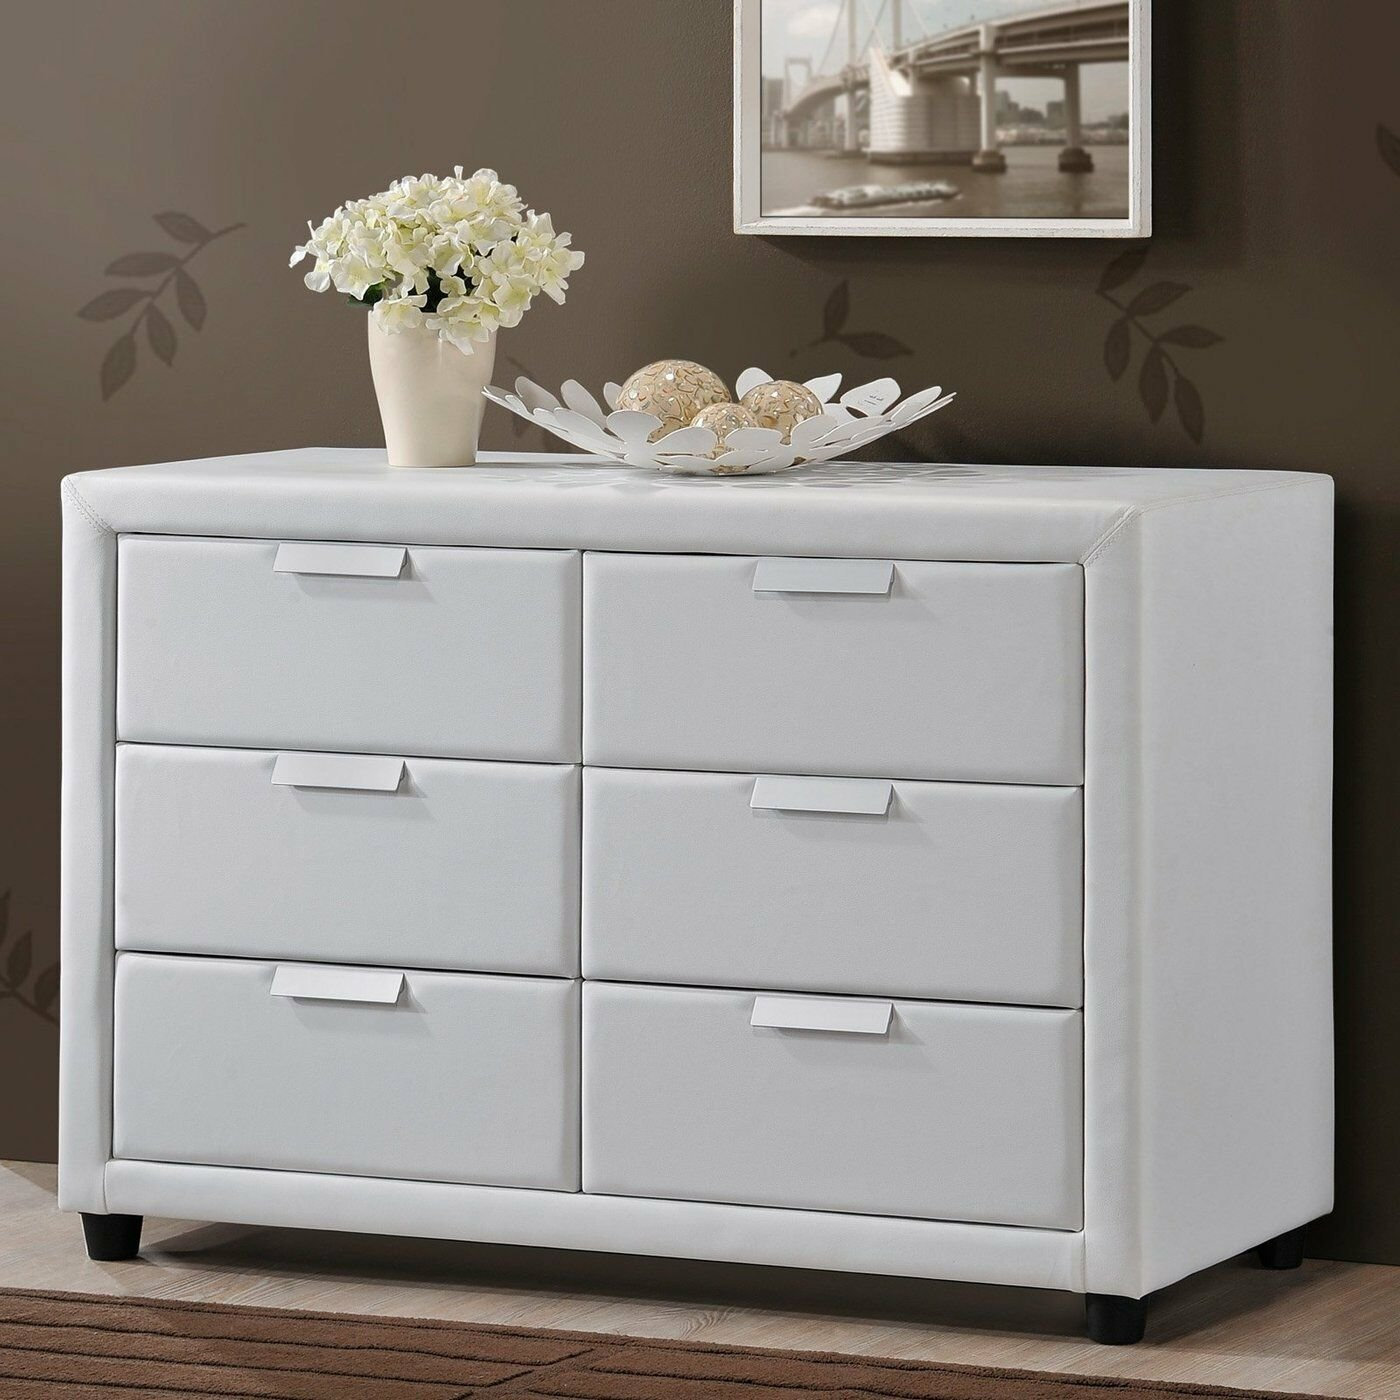 Best Bedroom Storage Dresser White Modern Chest Leather 6 Drawer Contemporary Faux Ebay With Pictures